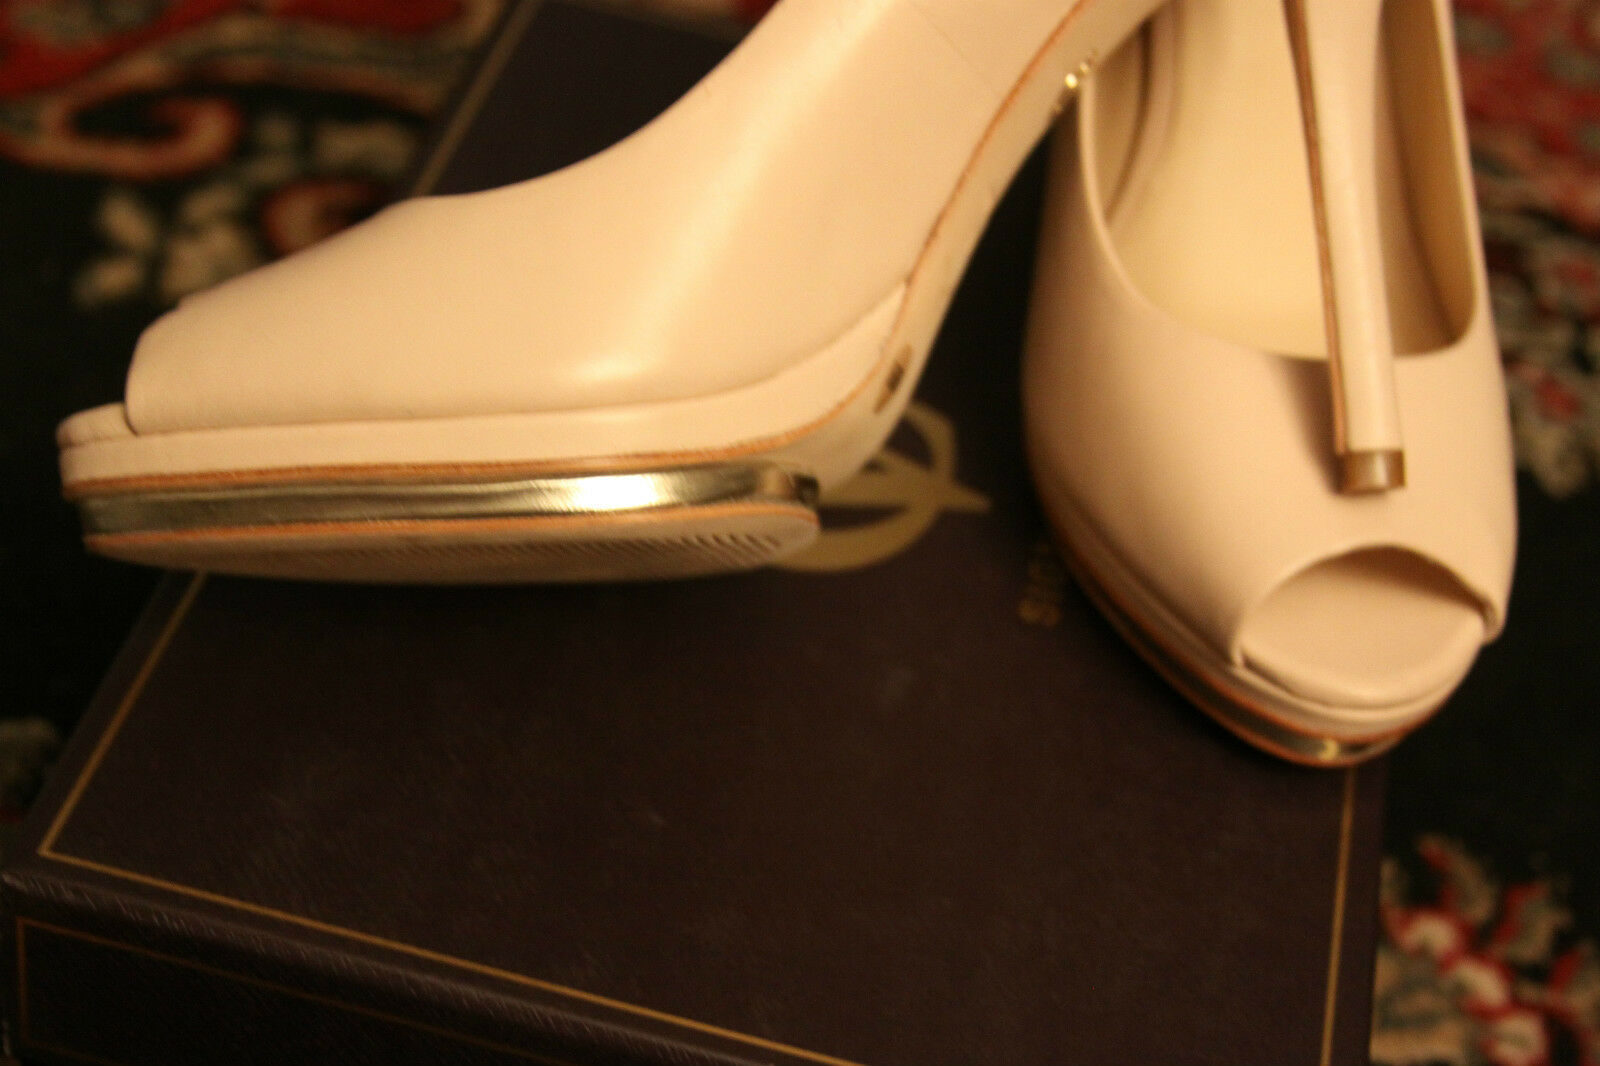 VINCE CAMUTO TOE SIGNATURE VI-AMOUR NUDE PEEP TOE CAMUTO NATURAL CALF HEELS SIZE 10M 5fedc1